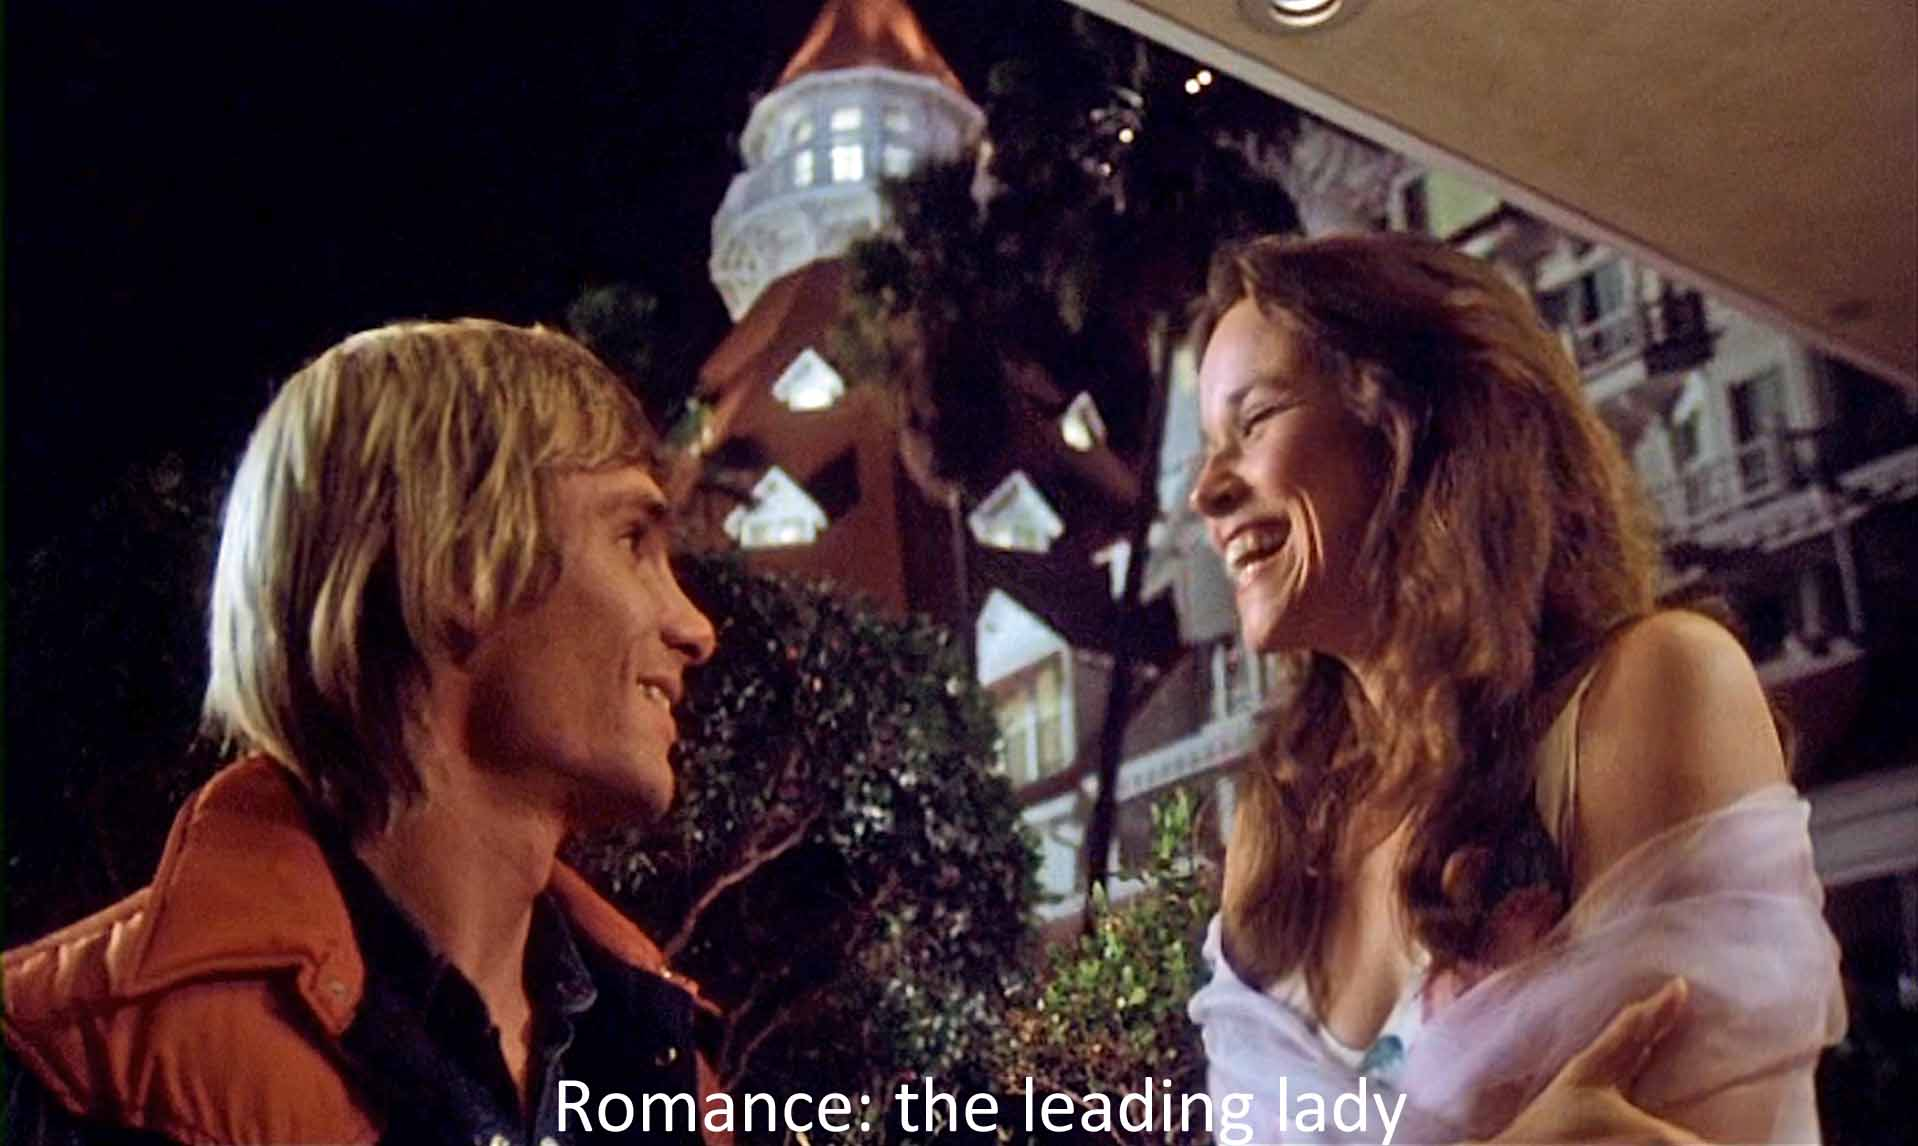 Romance: the leading lady